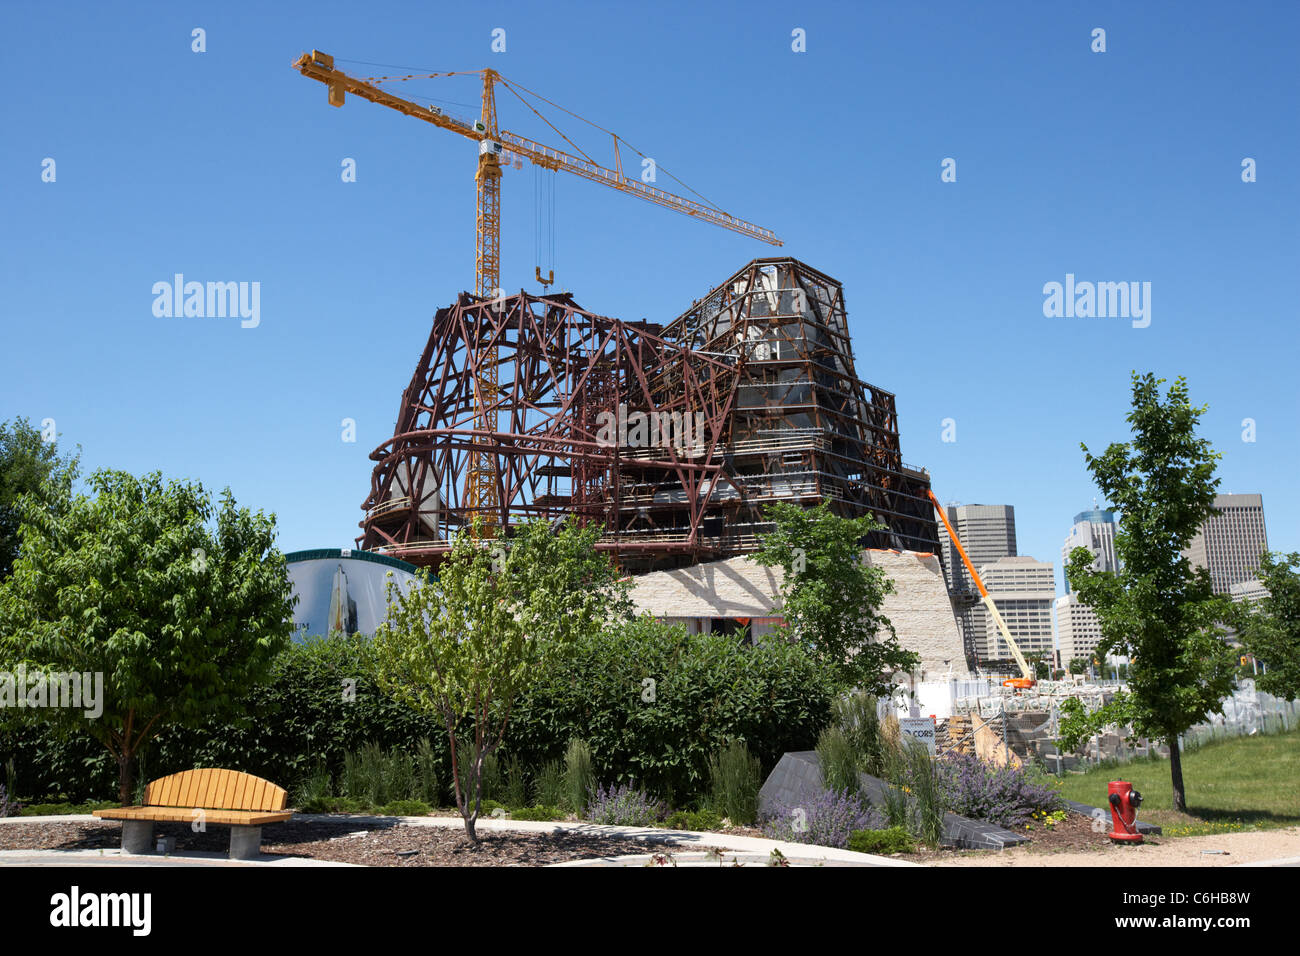 construction underway at the new canadian museum for human rights at the forks Winnipeg Manitoba Canada - Stock Image